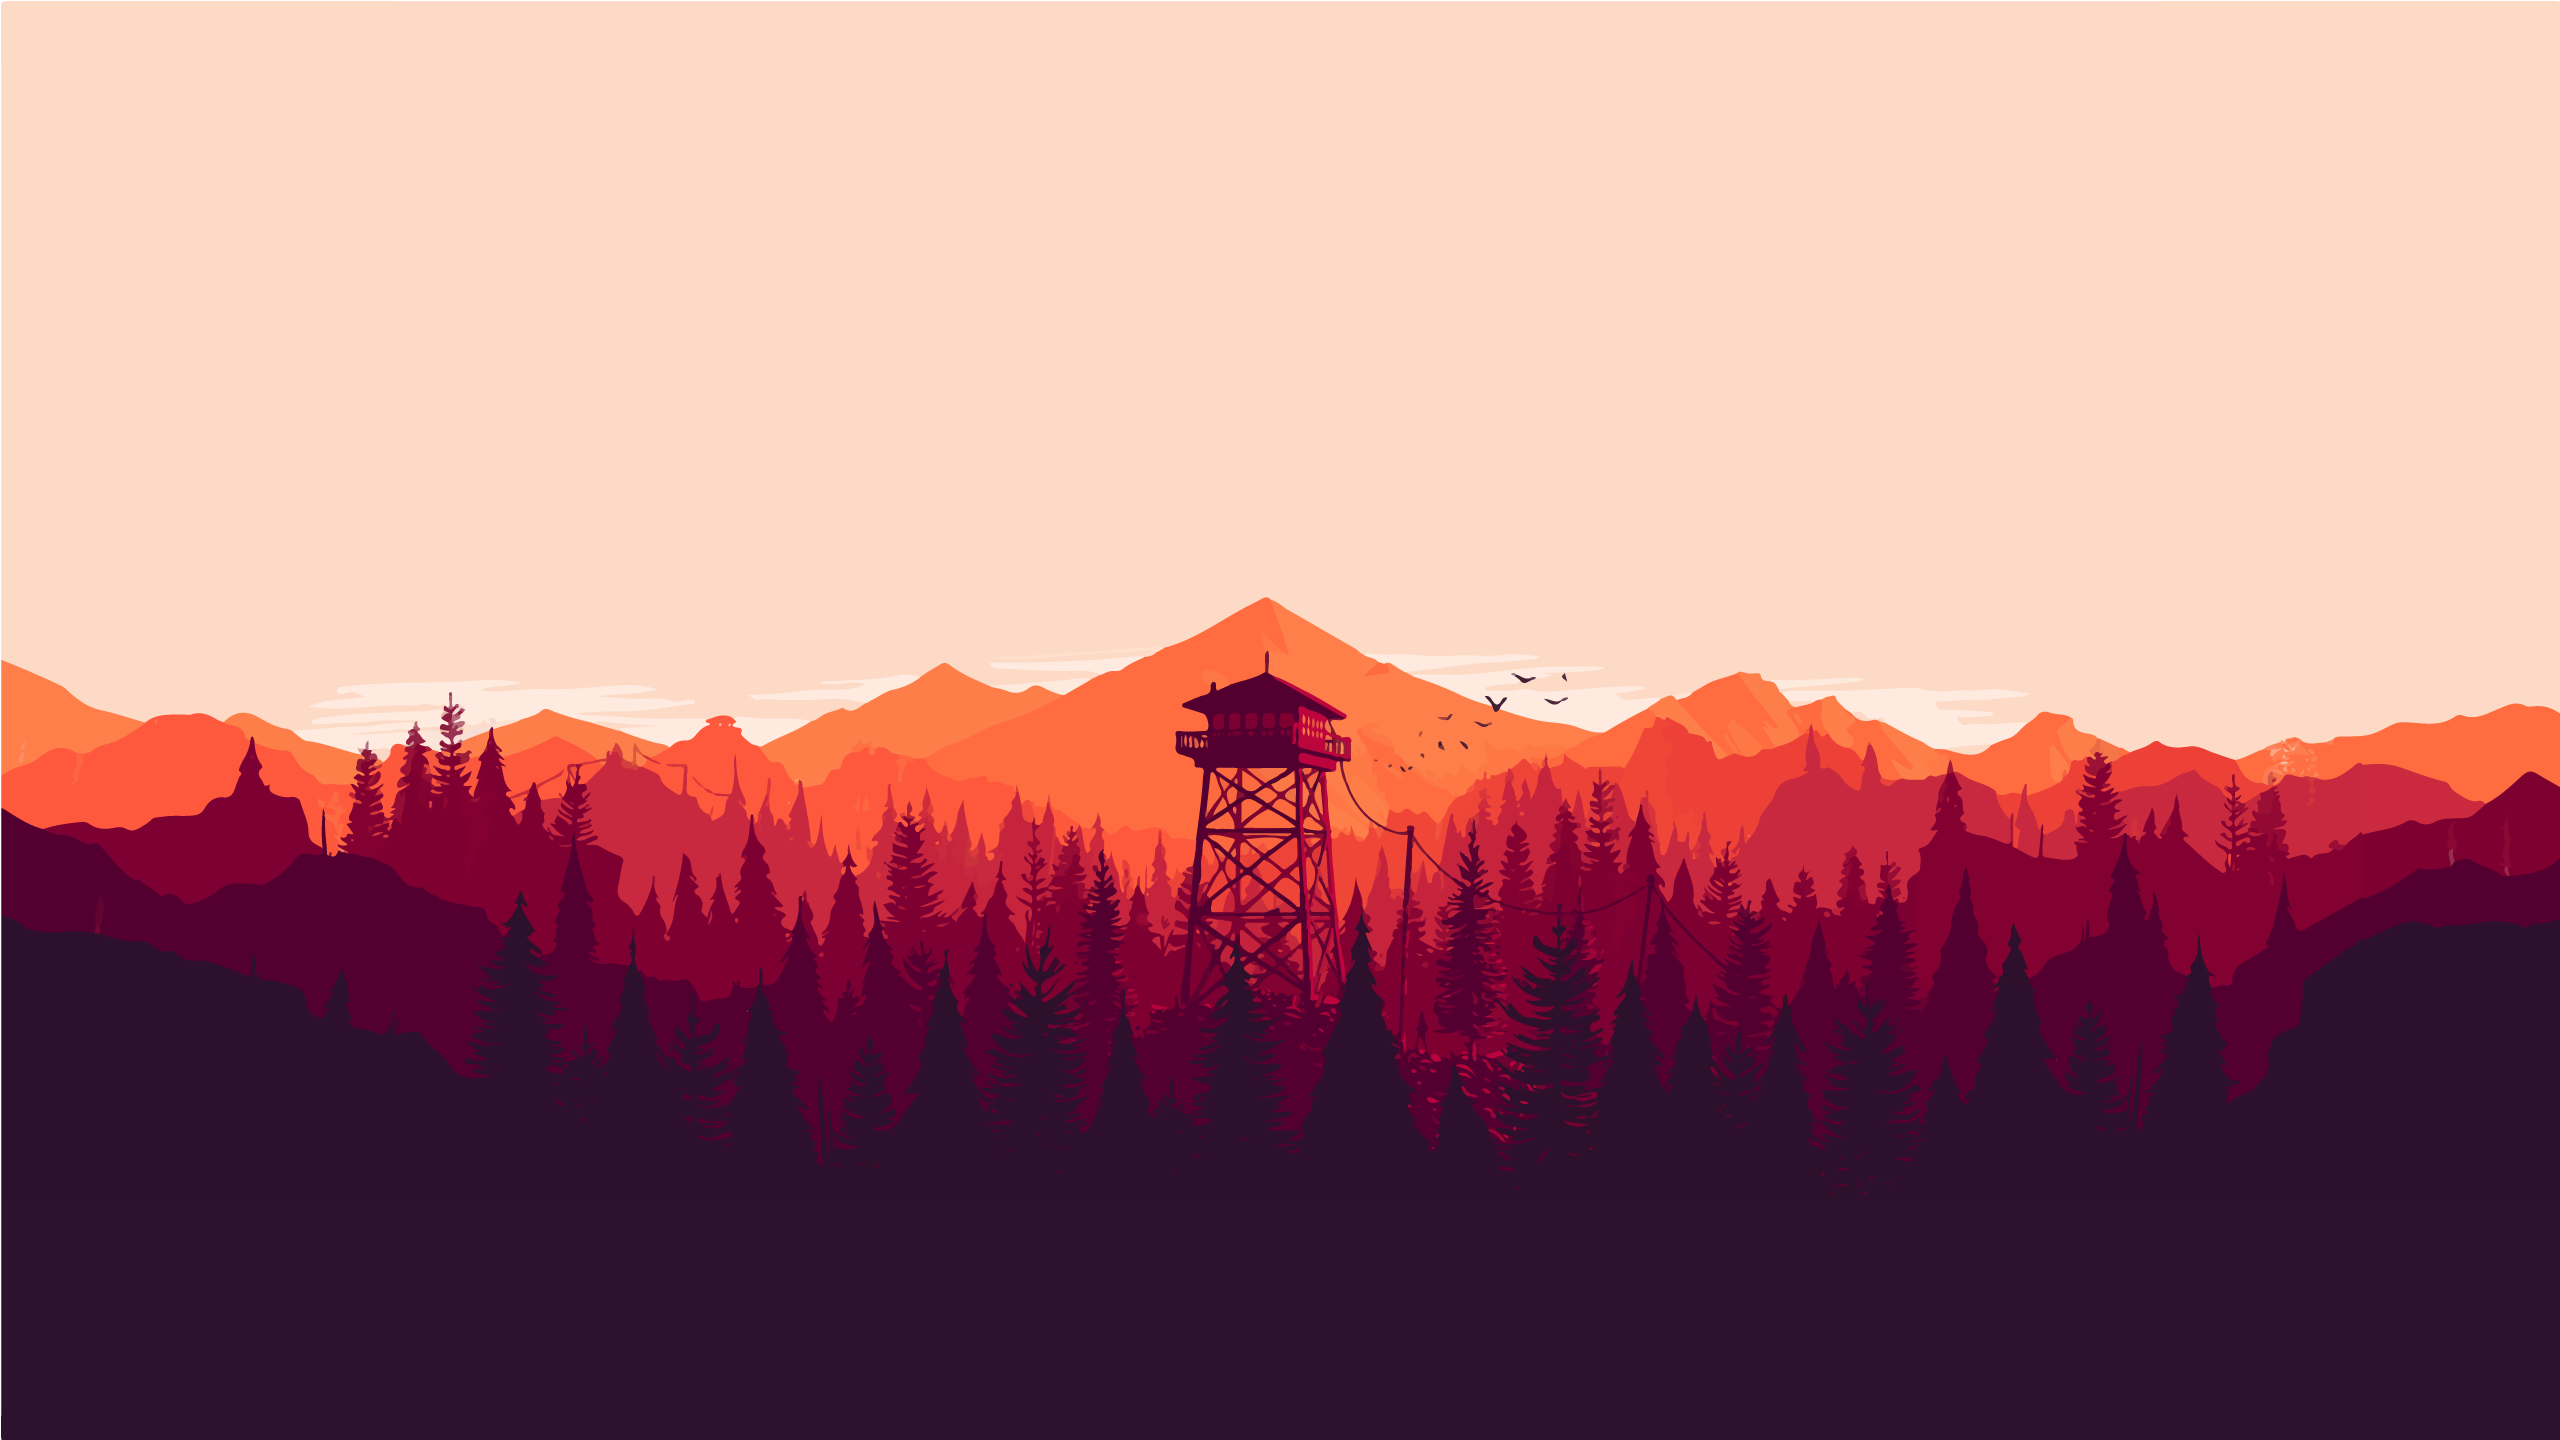 Television Firewatch Campo Wallpaper Desktop 4K Santo PNG Image